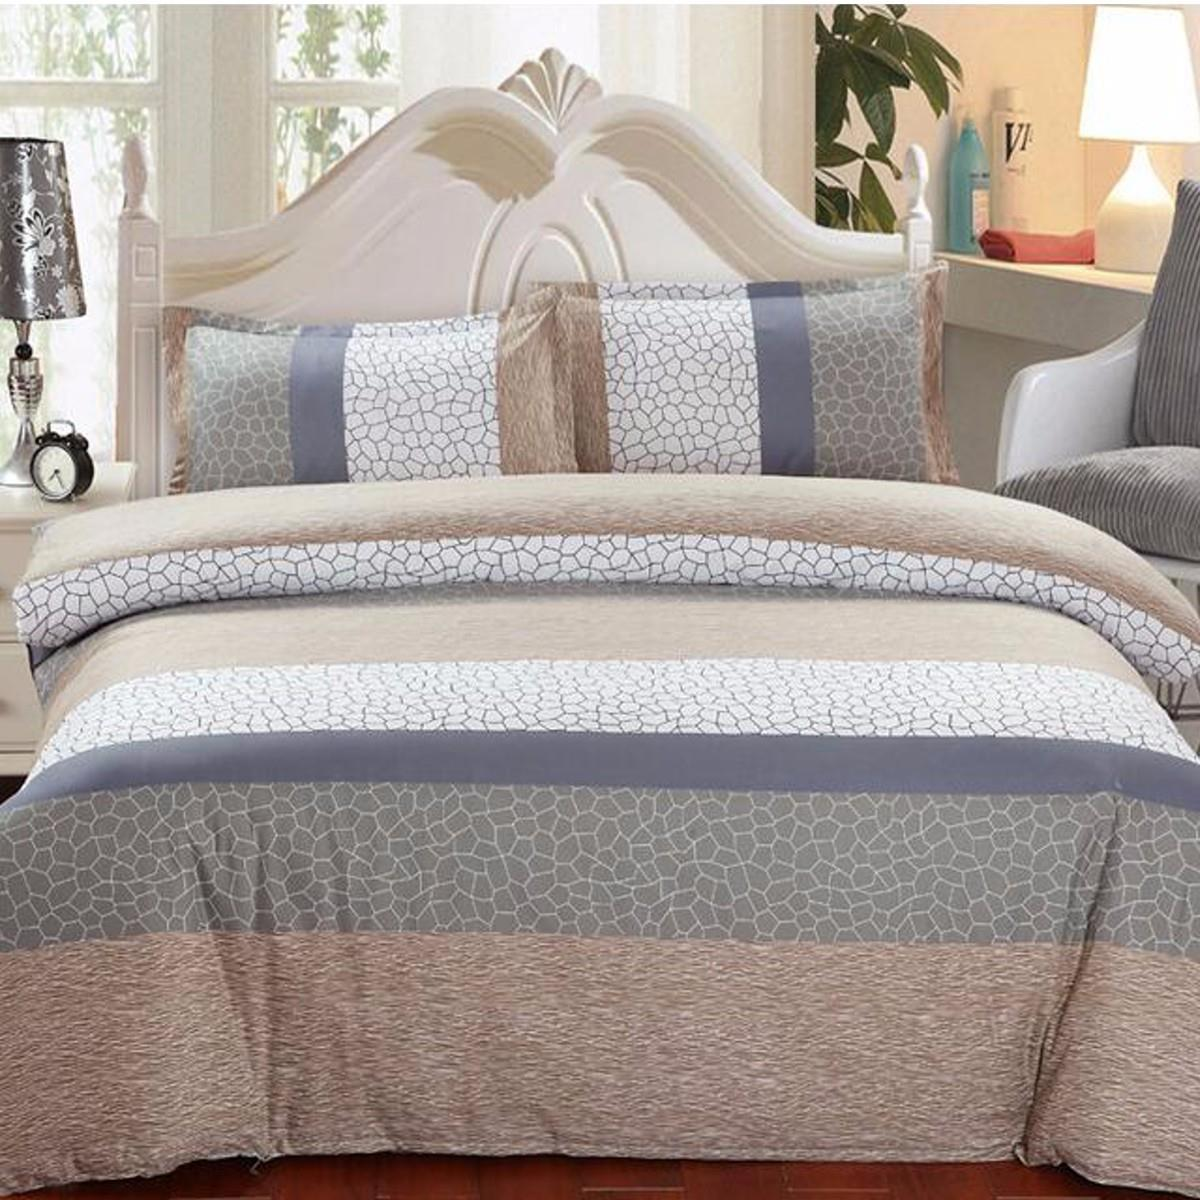 online get cheap bed cover for couples aliexpresscom  alibaba group - bedding set pcsset european classical simple style cotton pillowcaseduvet cover bed sheet mm for home family couple